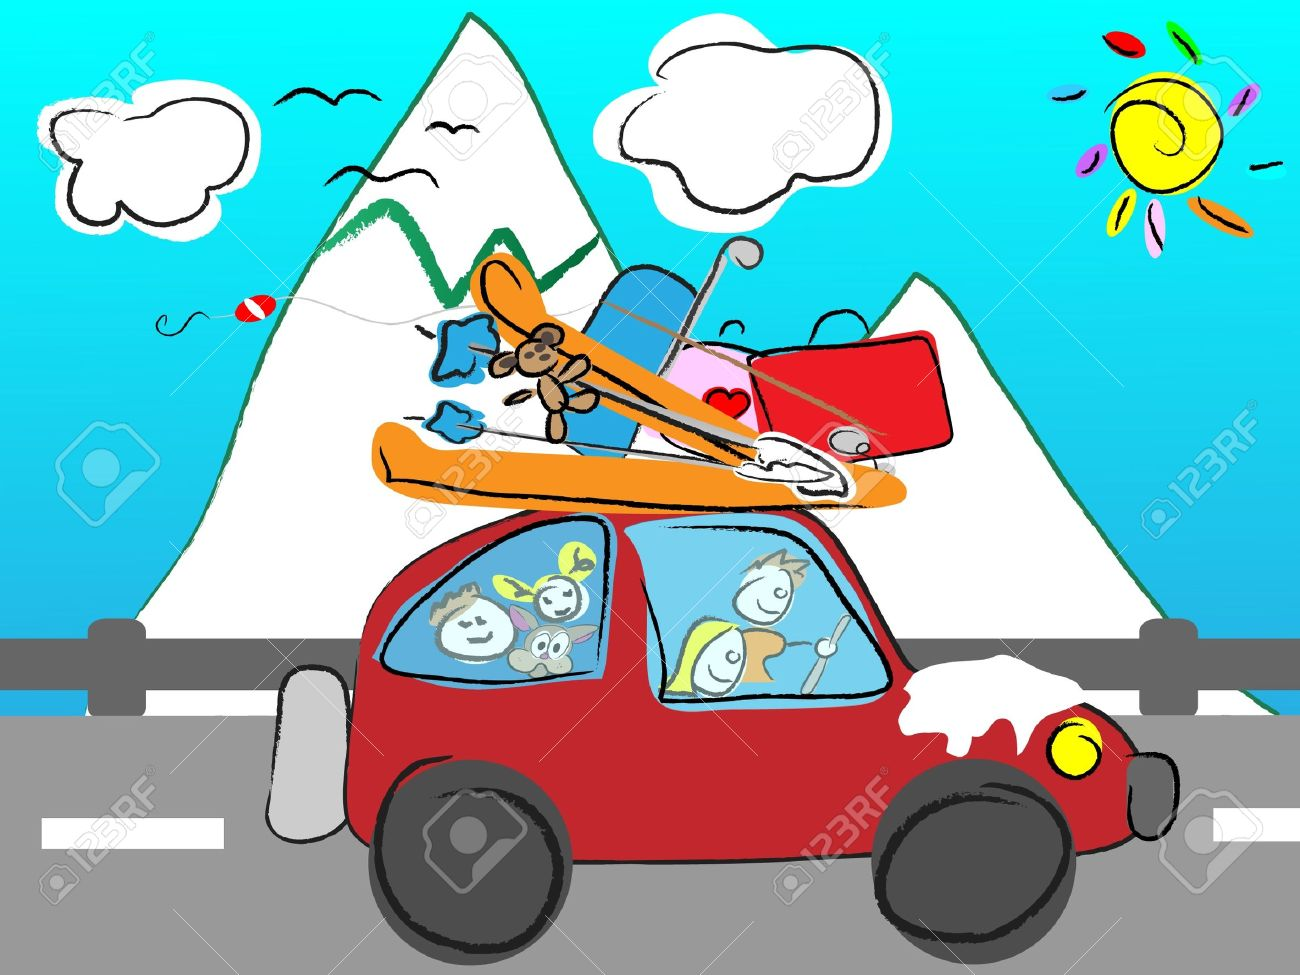 1,582 Family Road Trip Stock Illustrations, Cliparts And Royalty ... clip art library library